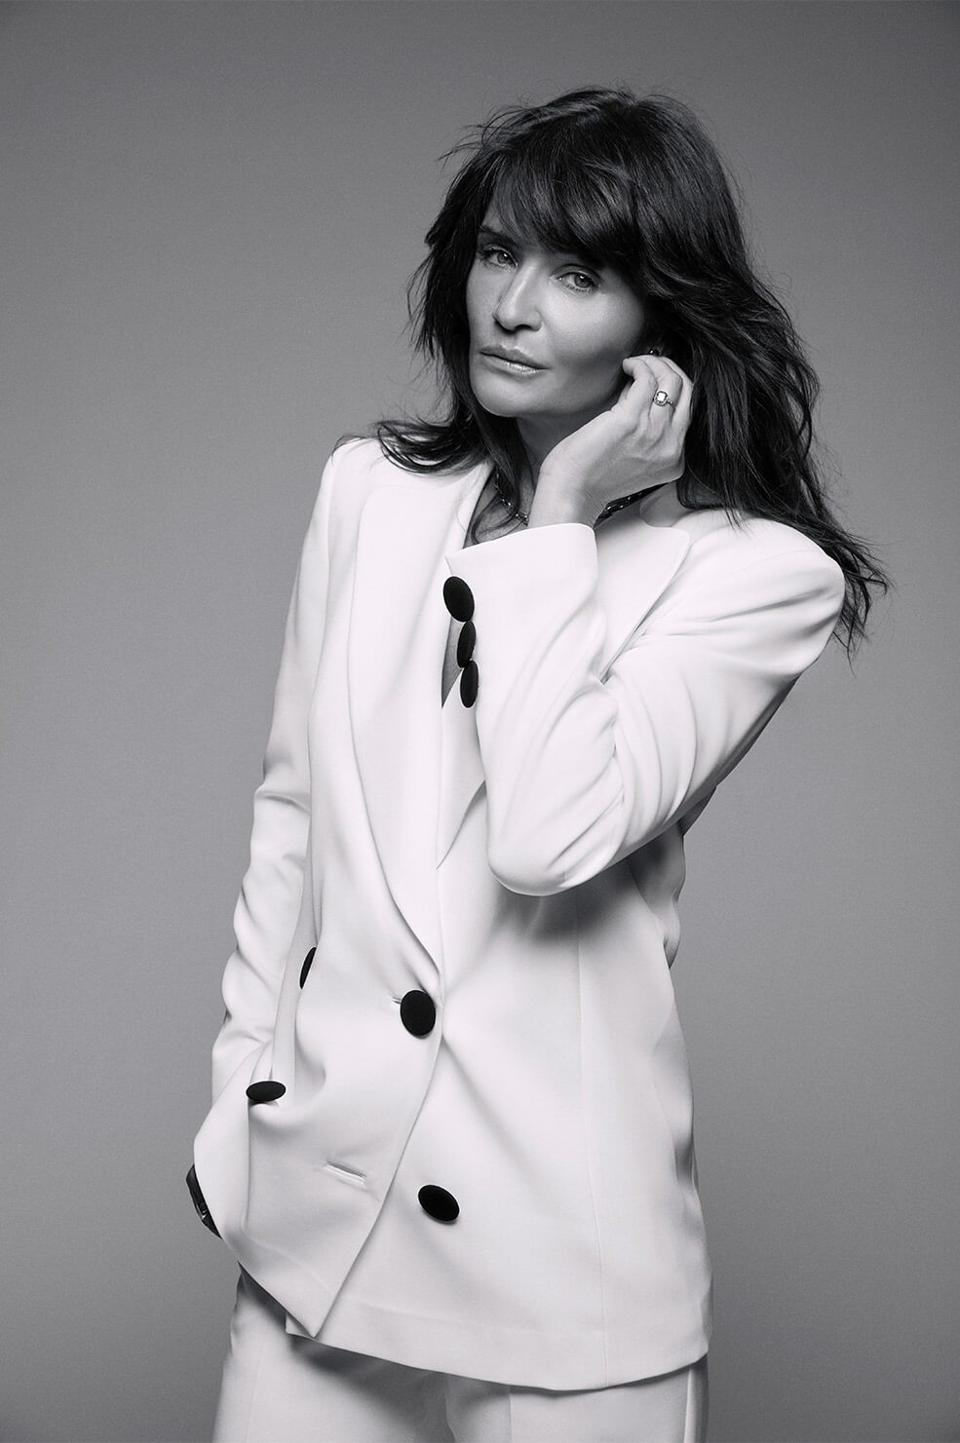 Helena Christensen models a white blazer from her collaboration with Anine Bing.